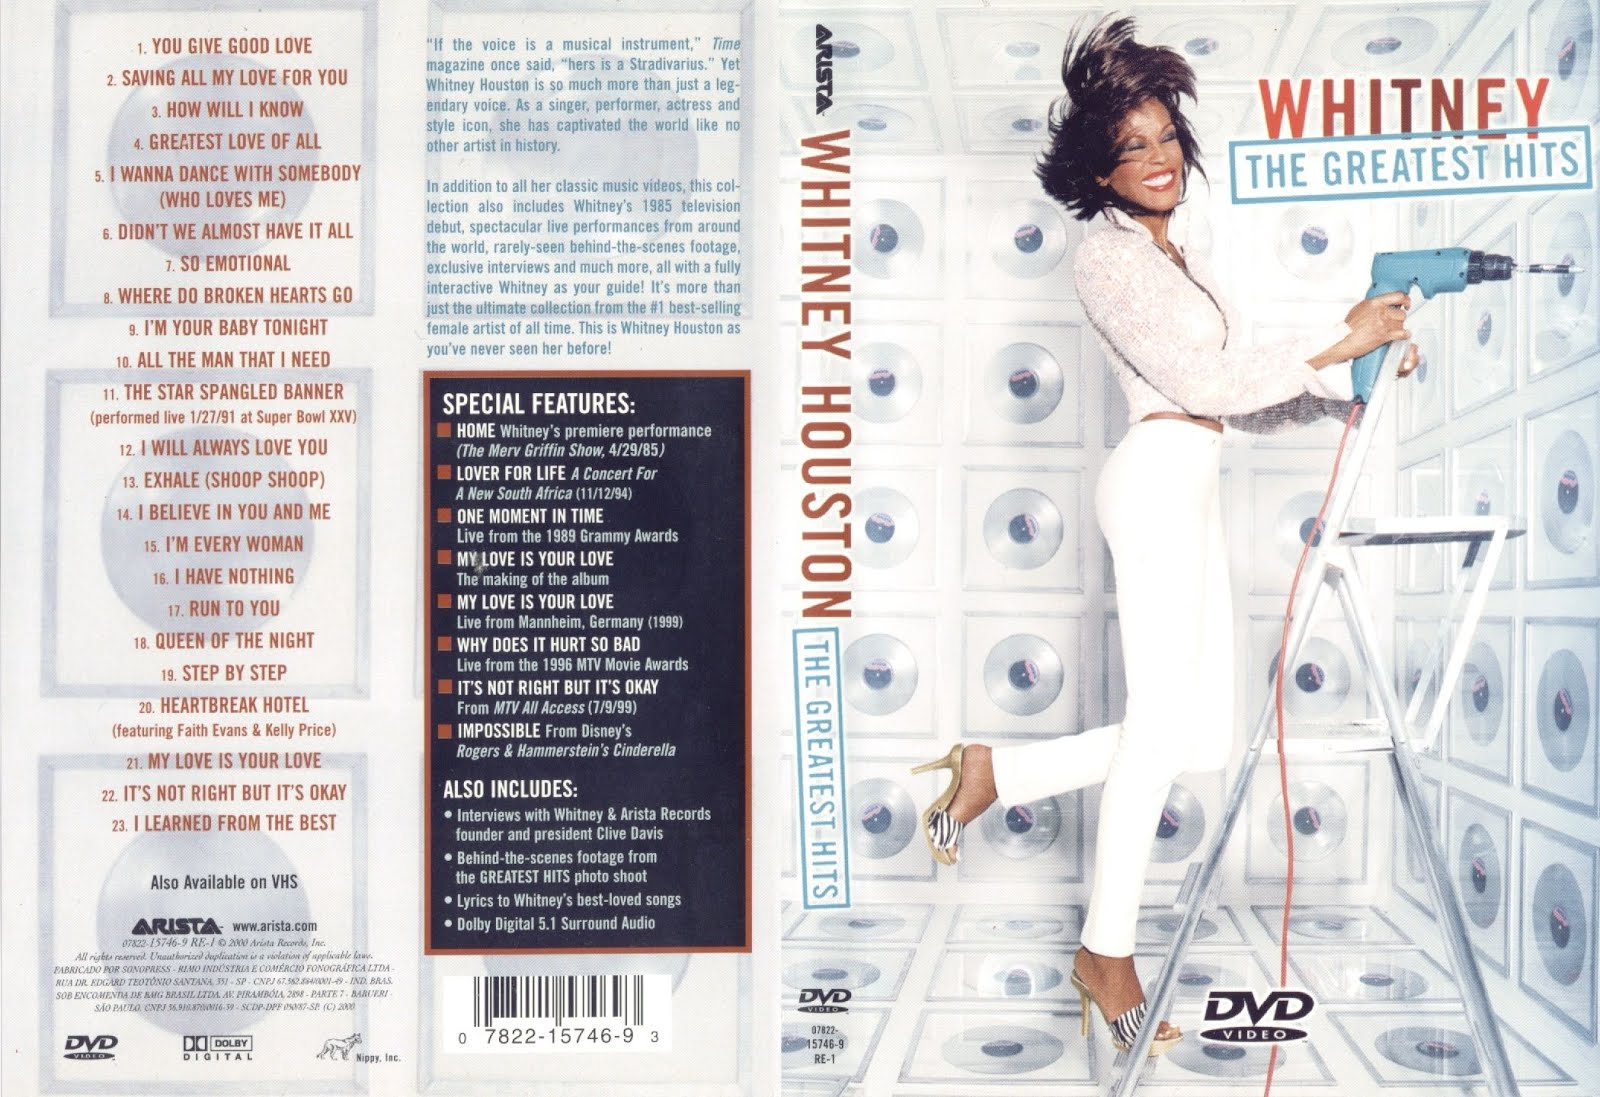 http://1.bp.blogspot.com/-RWQrHUdlFmQ/TzqtsGWDMwI/AAAAAAAAAmE/oyFQqSaqMeQ/s1600/Whitney+Houston+-+The+Greatest+hits.jpg